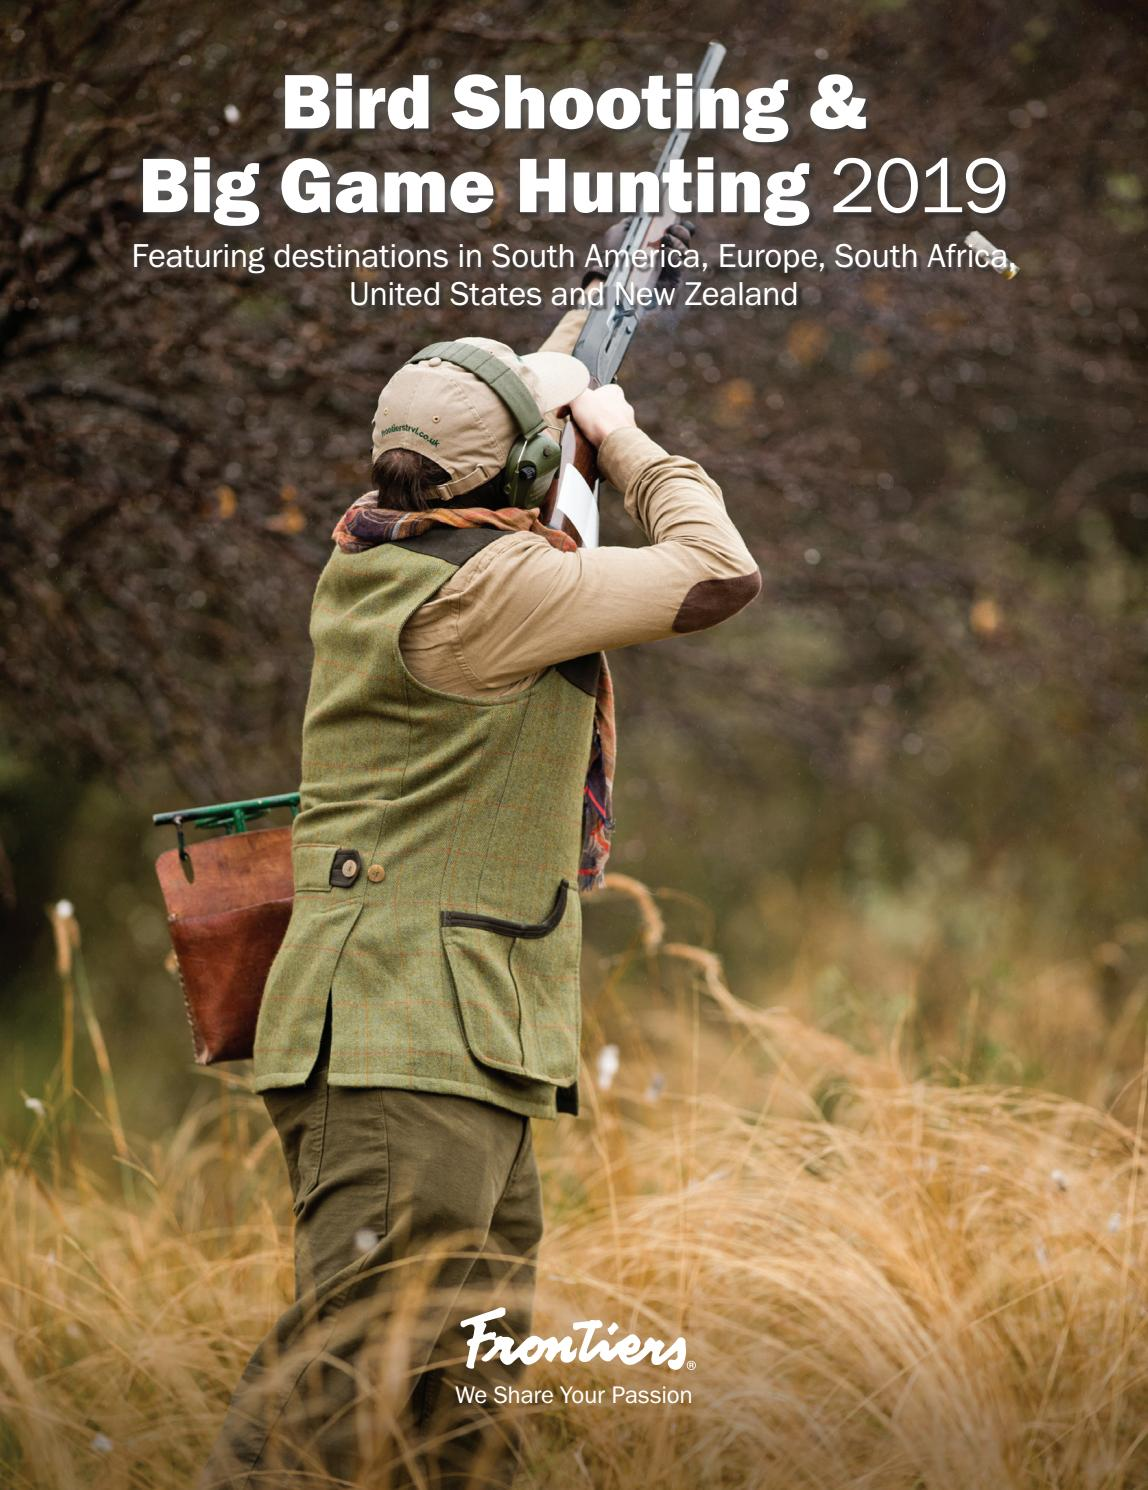 Bird Shooting & Big Game Hunting 2019 Brochure by Frontiers